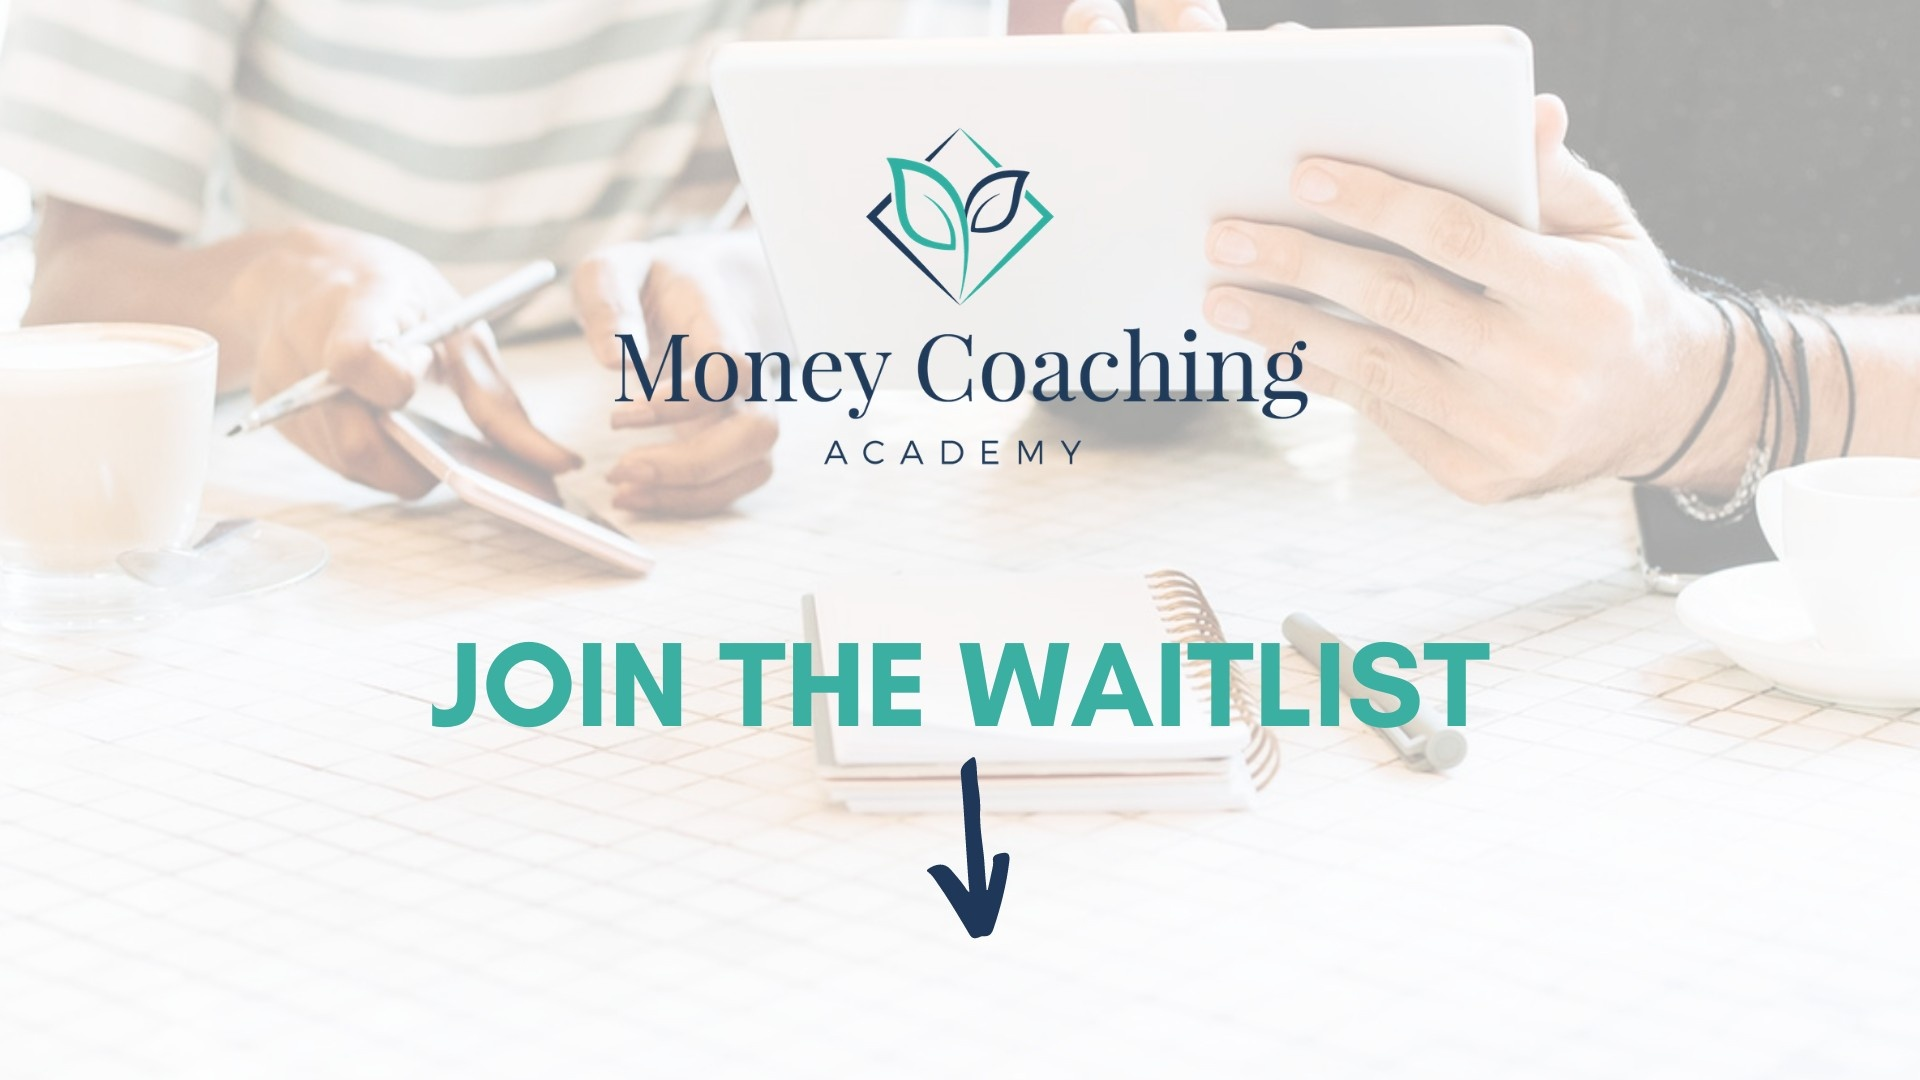 Money Coaching Academy Join the Waitlist